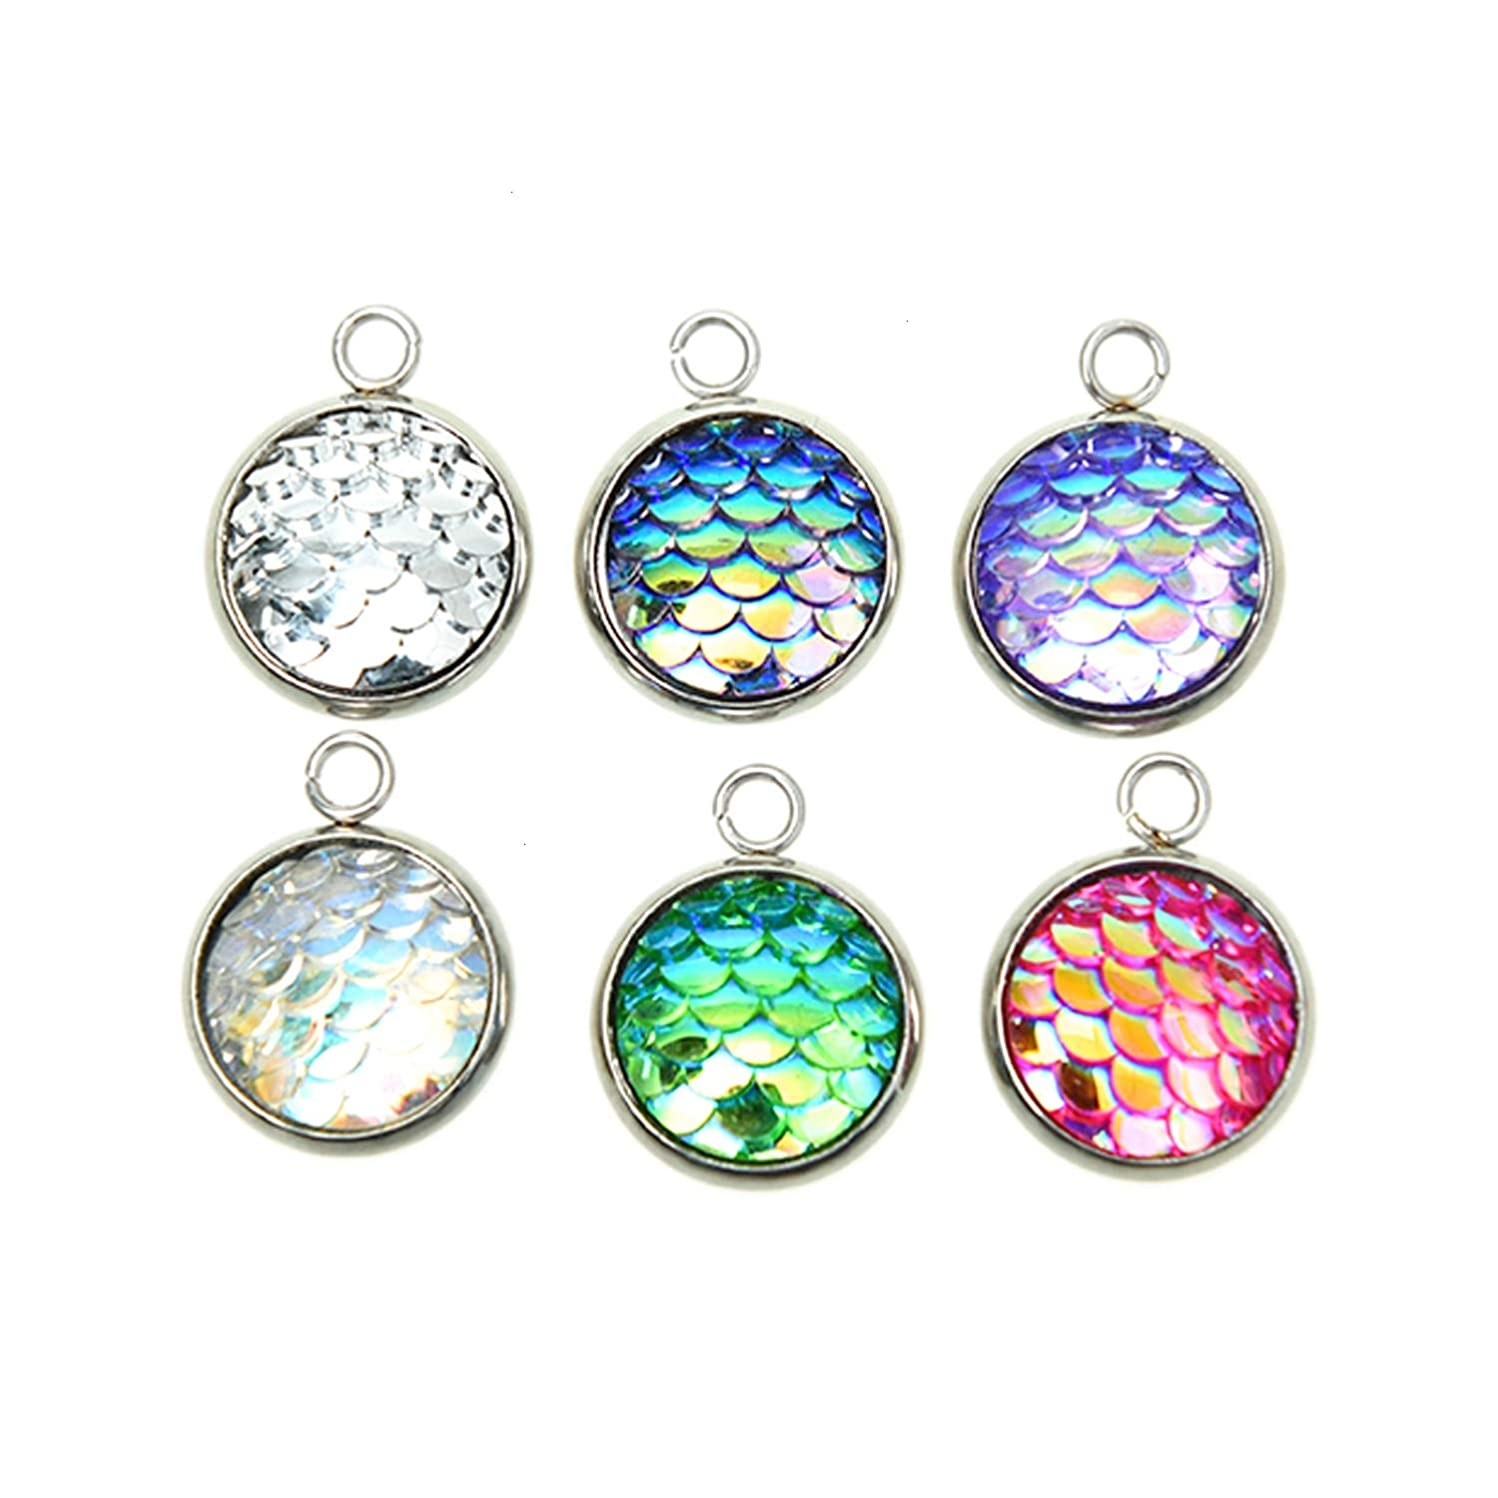 Monrocco 24Pcs Mixed Color Flat Round with Mermaid Fish Scale Shaped Resin Pendants with Stainless Steel Finding for Jewelry Making Supply Pendant Bracelet DIY Crafting